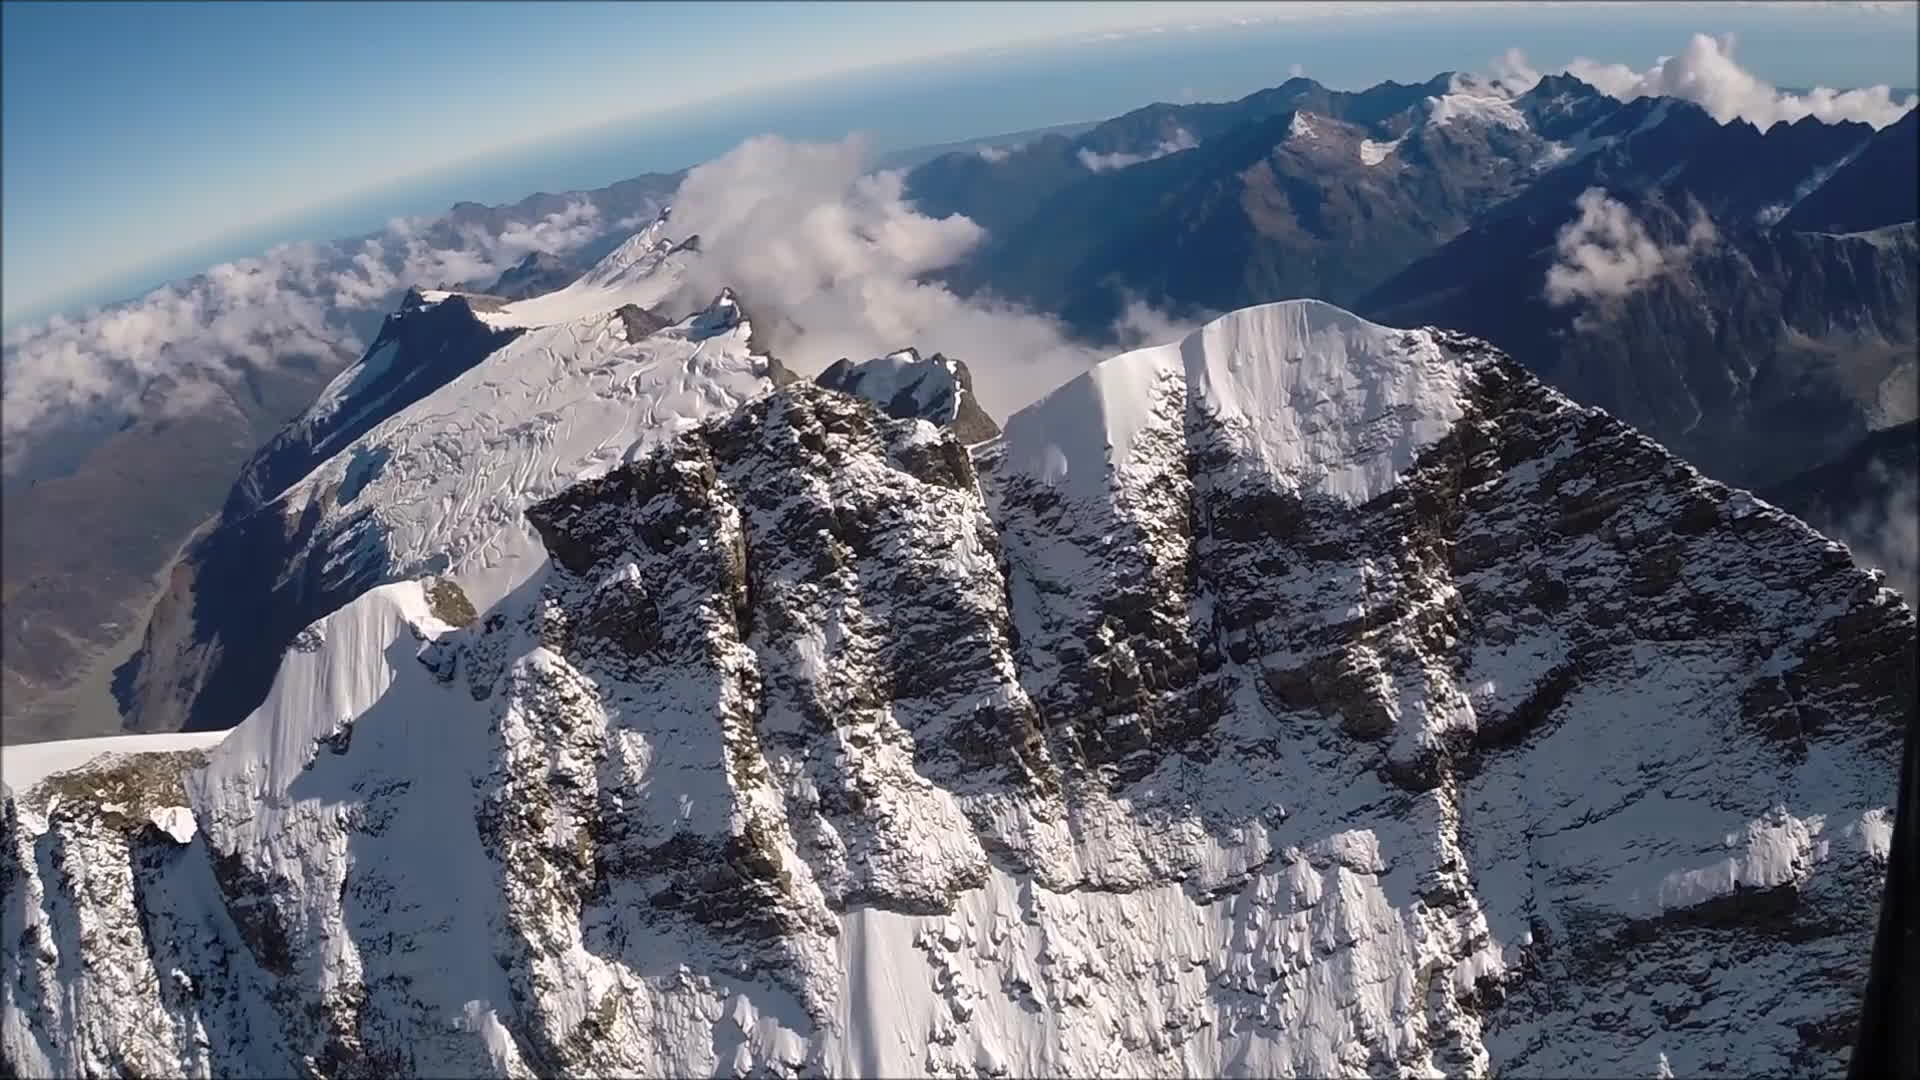 fpv, fpvracing, Surfing the mountains GIFs